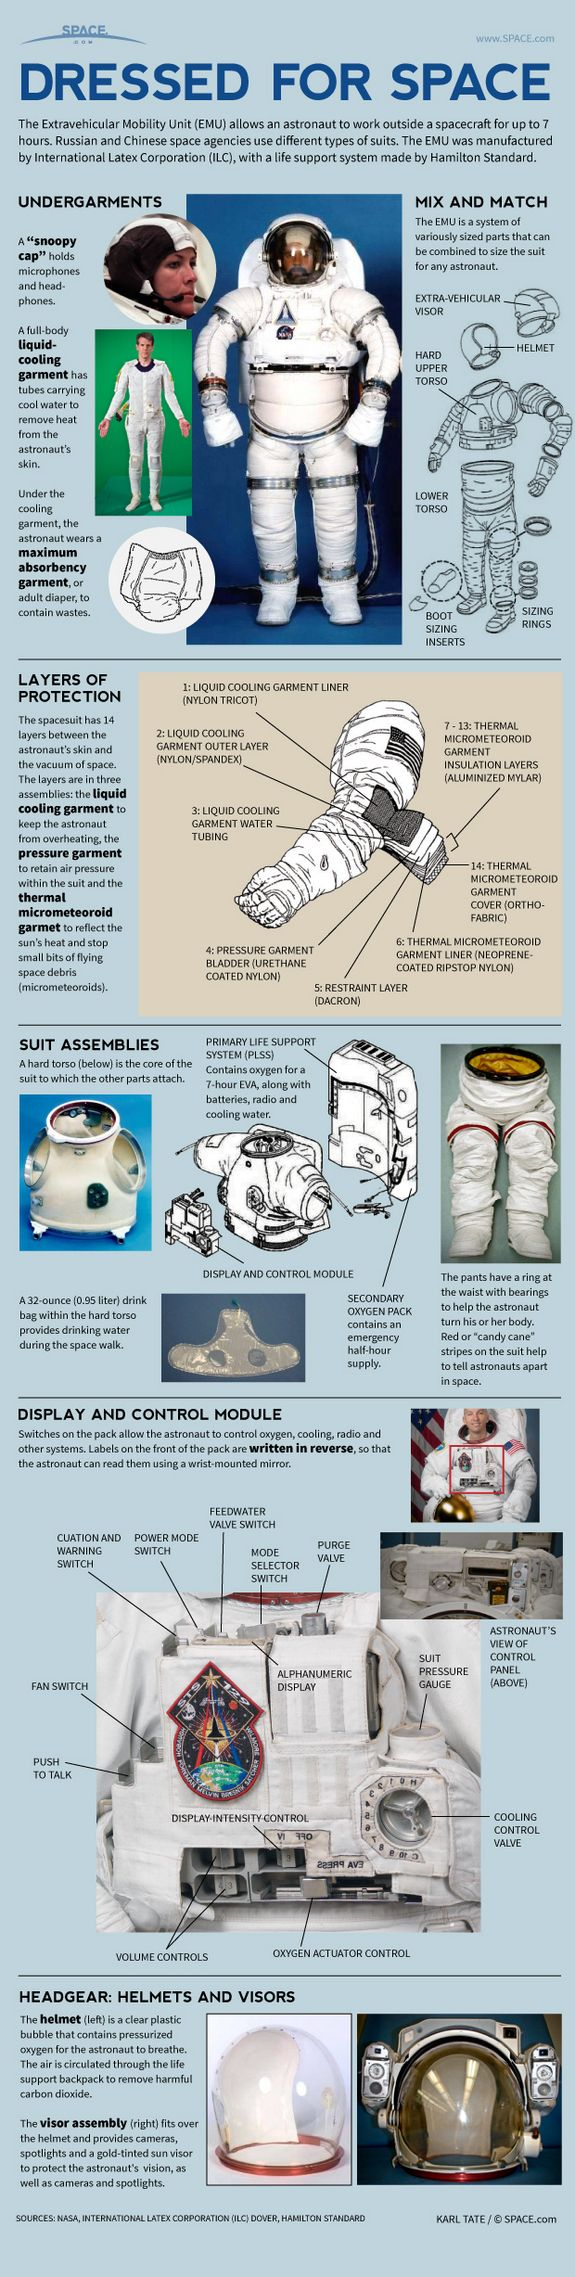 How NASA Spacesuits Work: EMUs (Extravehicular Mobility Unit) Explained #Infographic